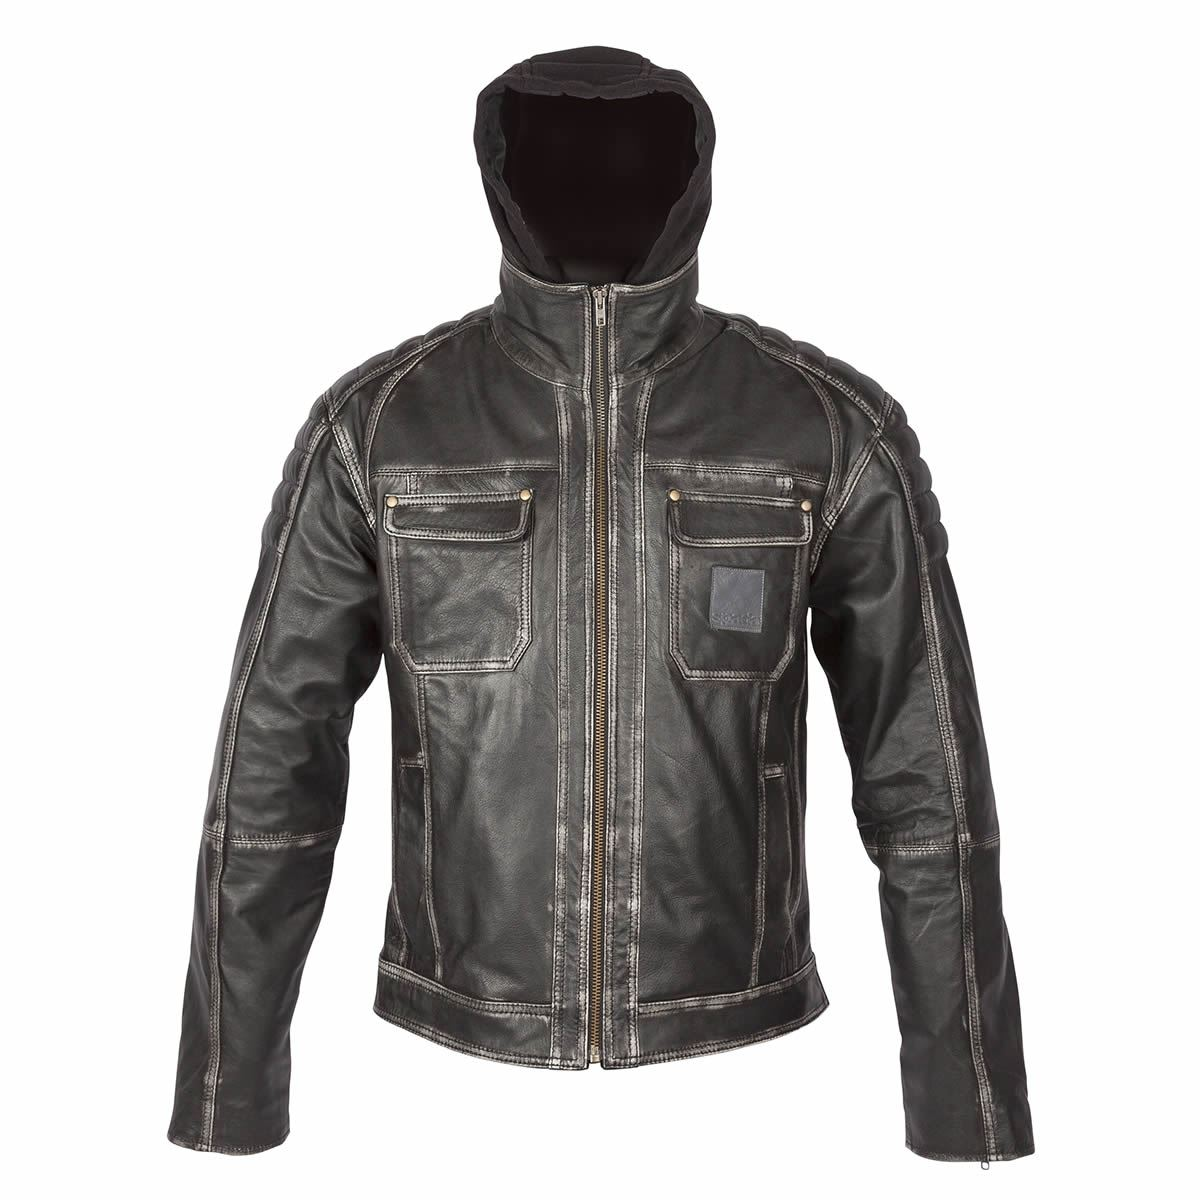 Parts & Accessories Men's Clothing Lower Price with Suzuki 4269 White Motorbike Motorcycle Cowhide Leather Jacket And Leather Gloves